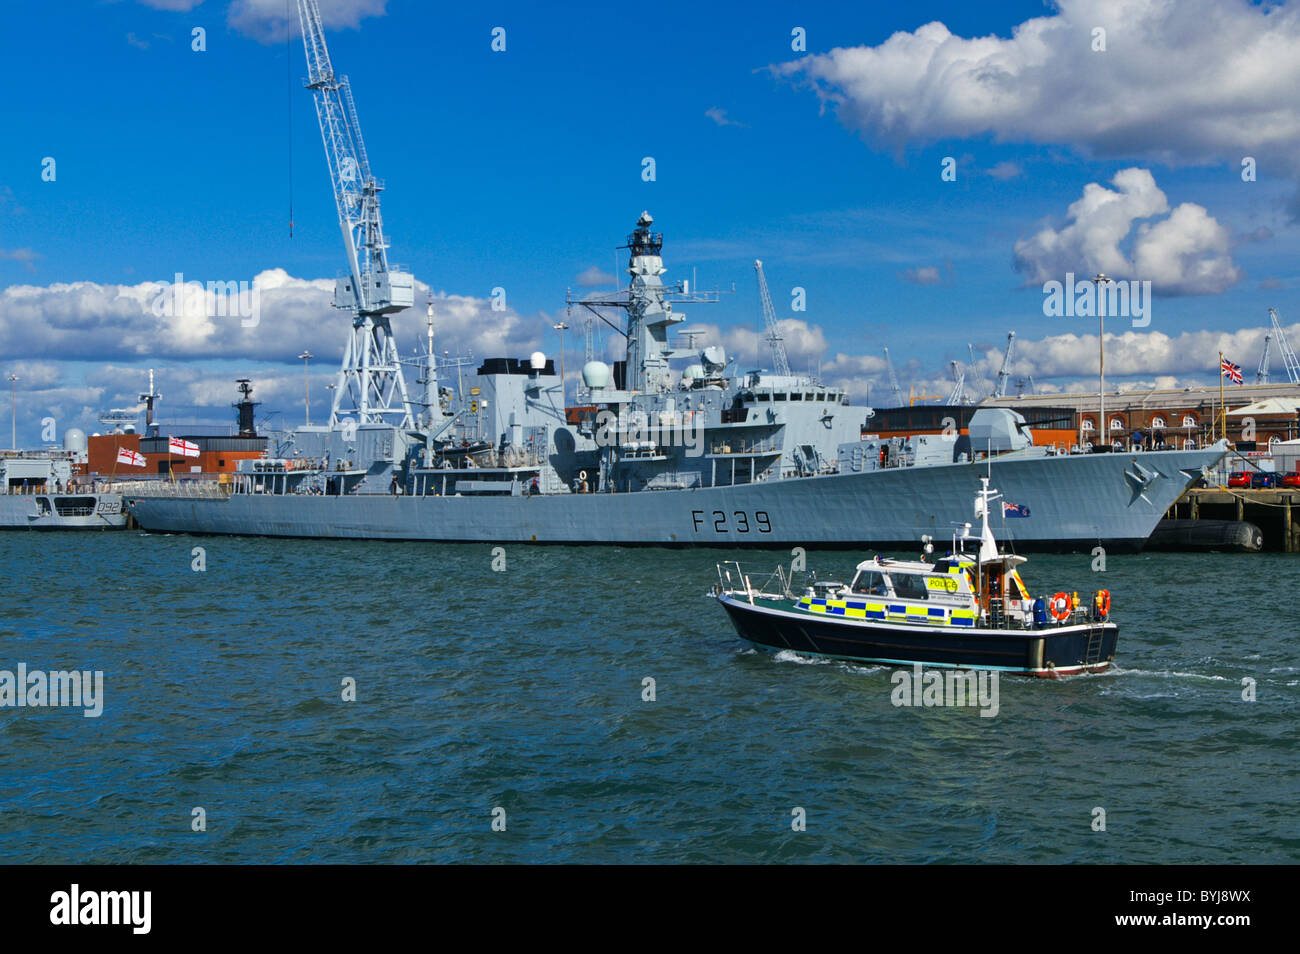 The Royal Navy Type 23 (Duke class) frigate HMS RICHMOND in Portsmouth, England, United Kingdom. Stock Photo